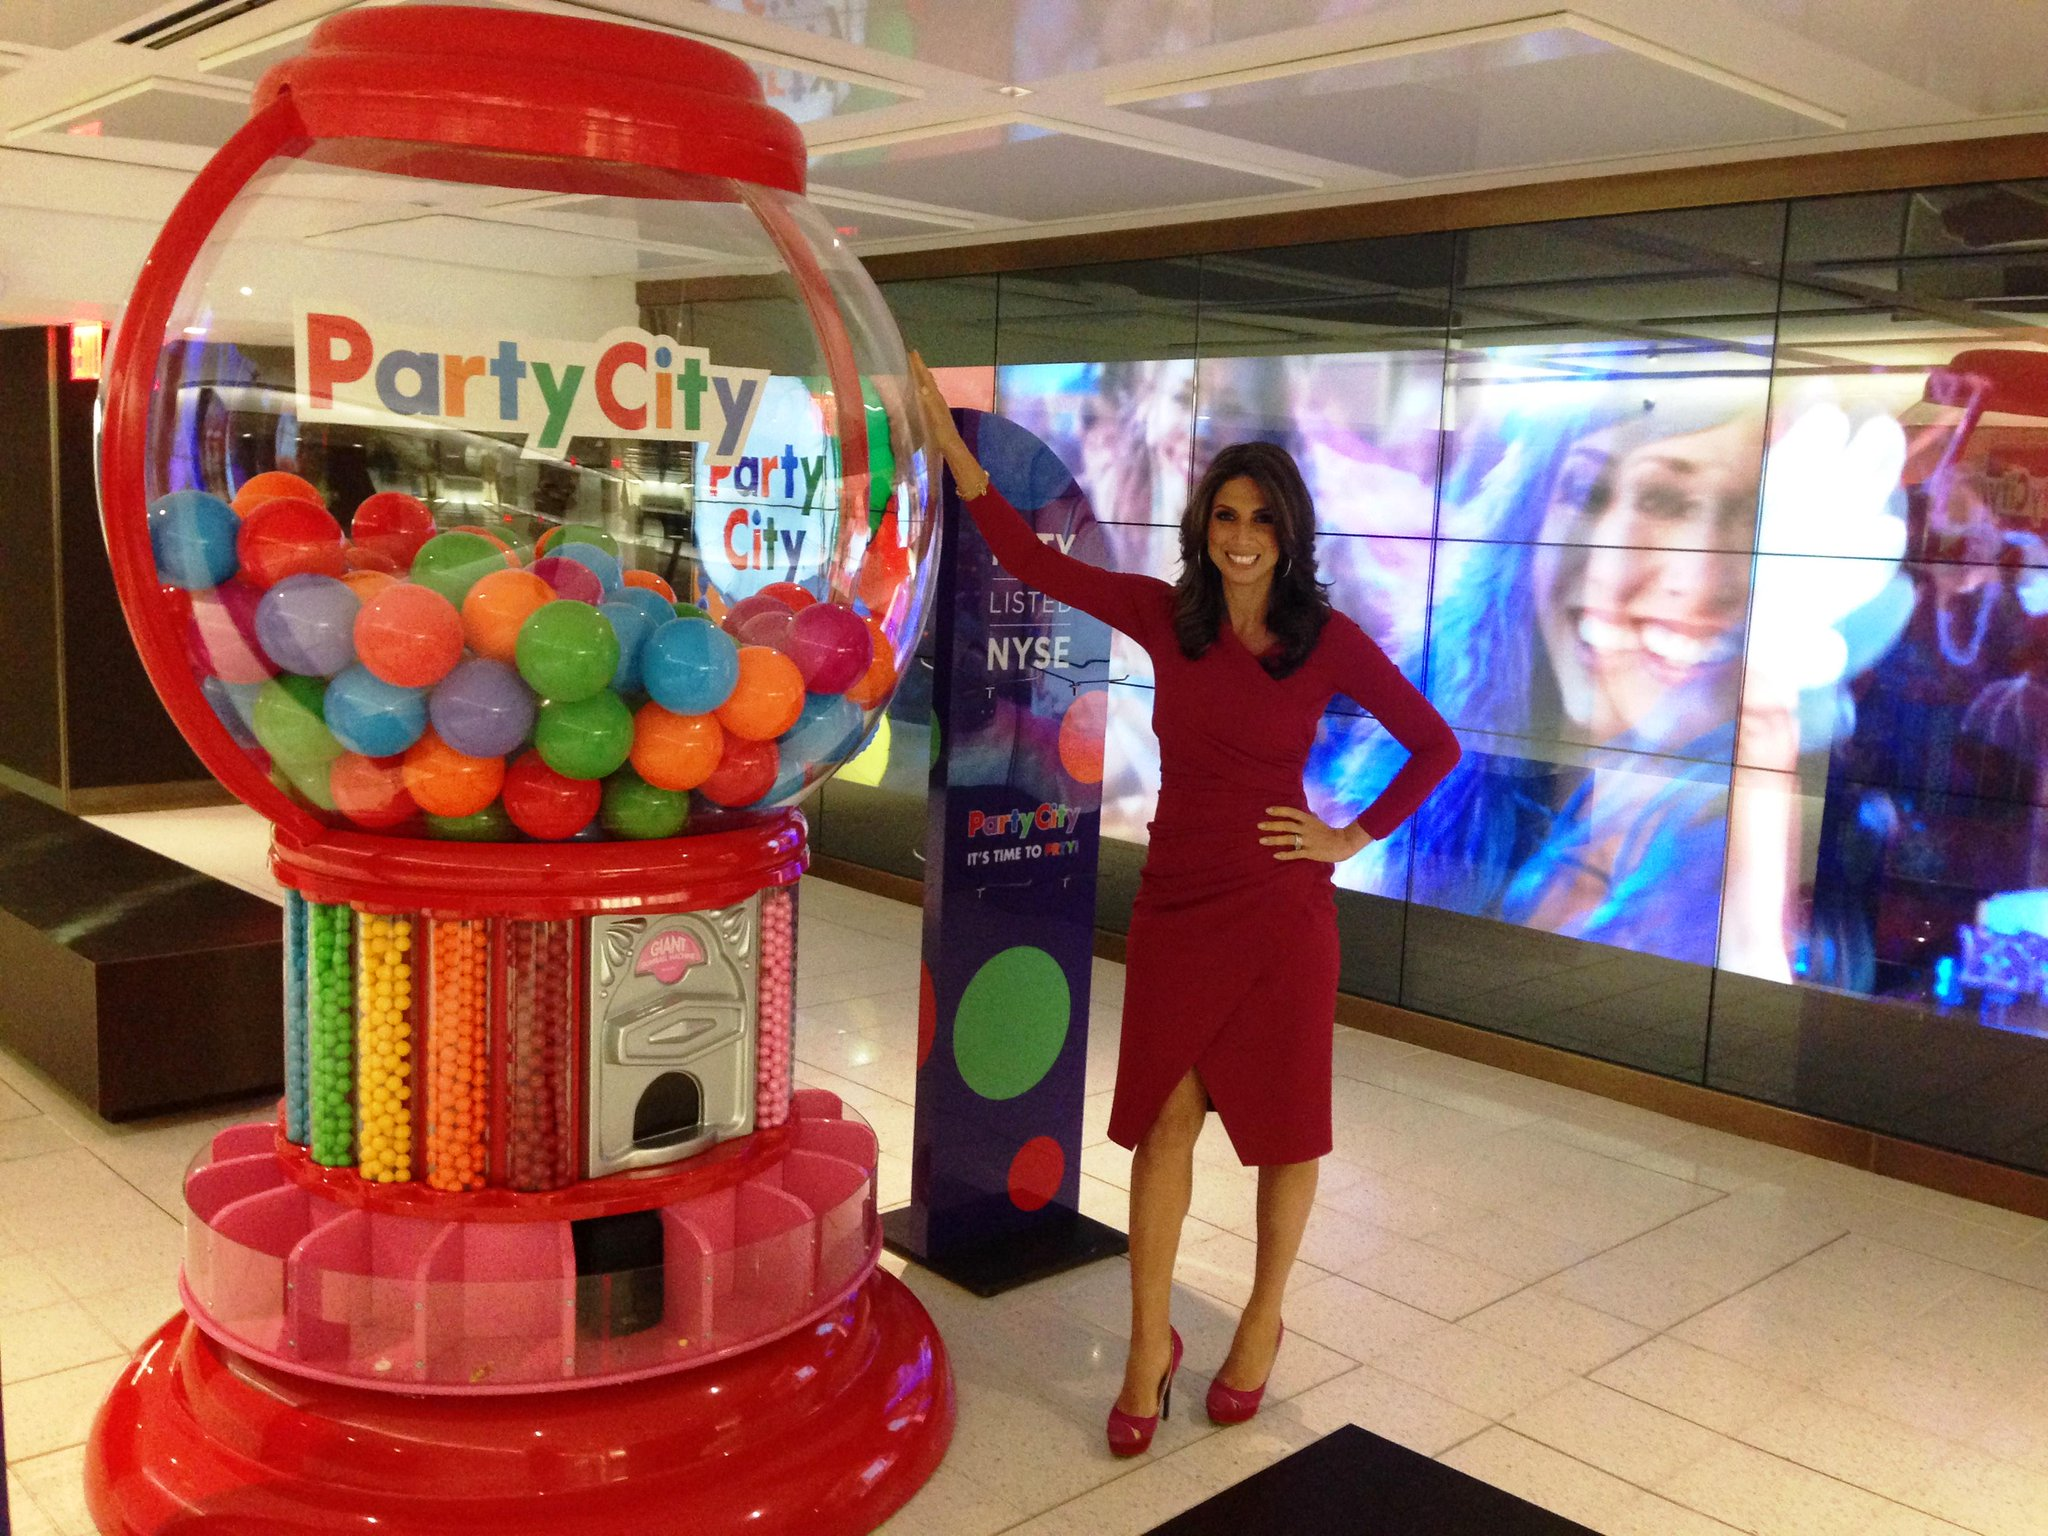 New listing @nyse @PartyCity $PRTY shares +20% first day of trading, Gumball, anyone? http://t.co/lpdLBEyAOL